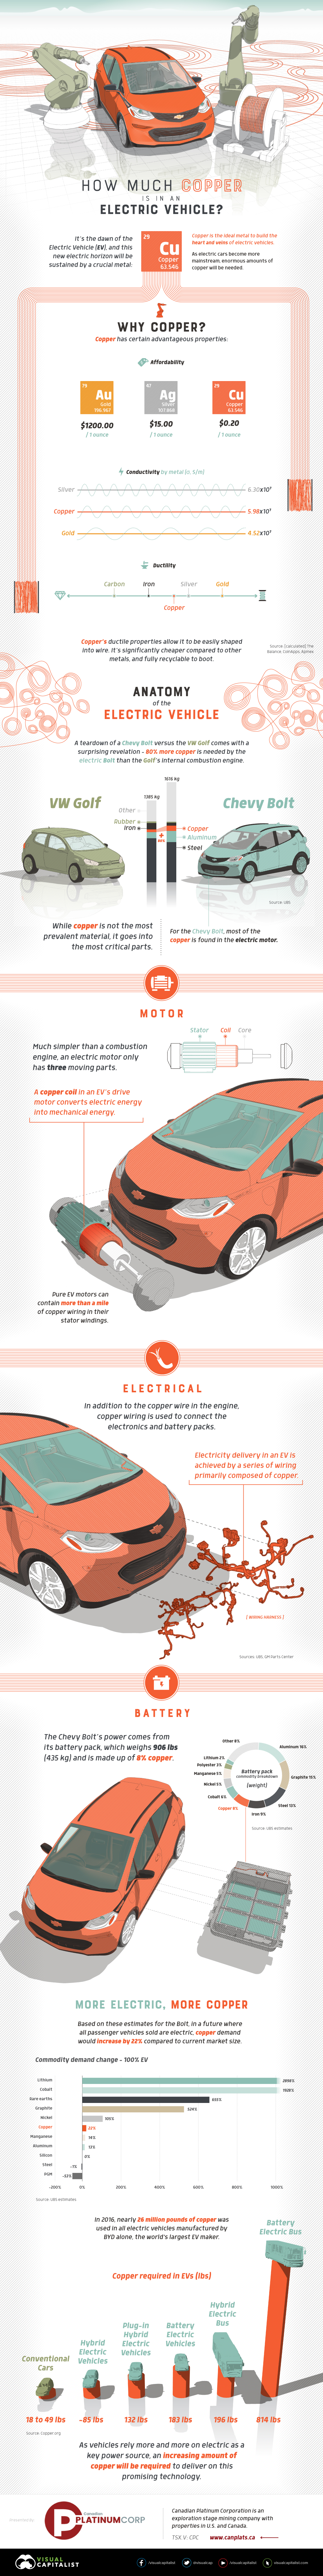 Copper Electric Vehicle